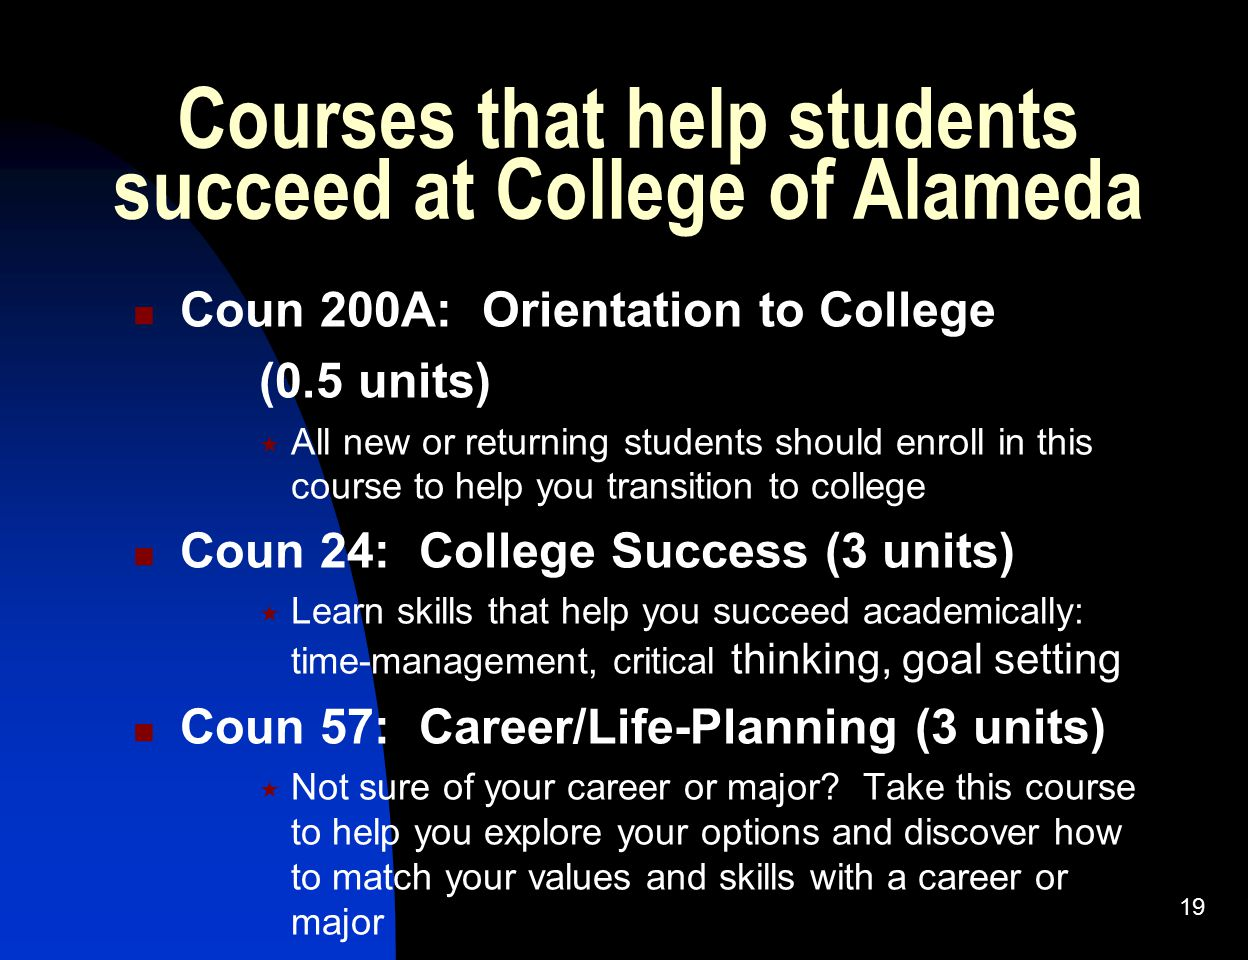 Courses that help students succeed at College of Alameda